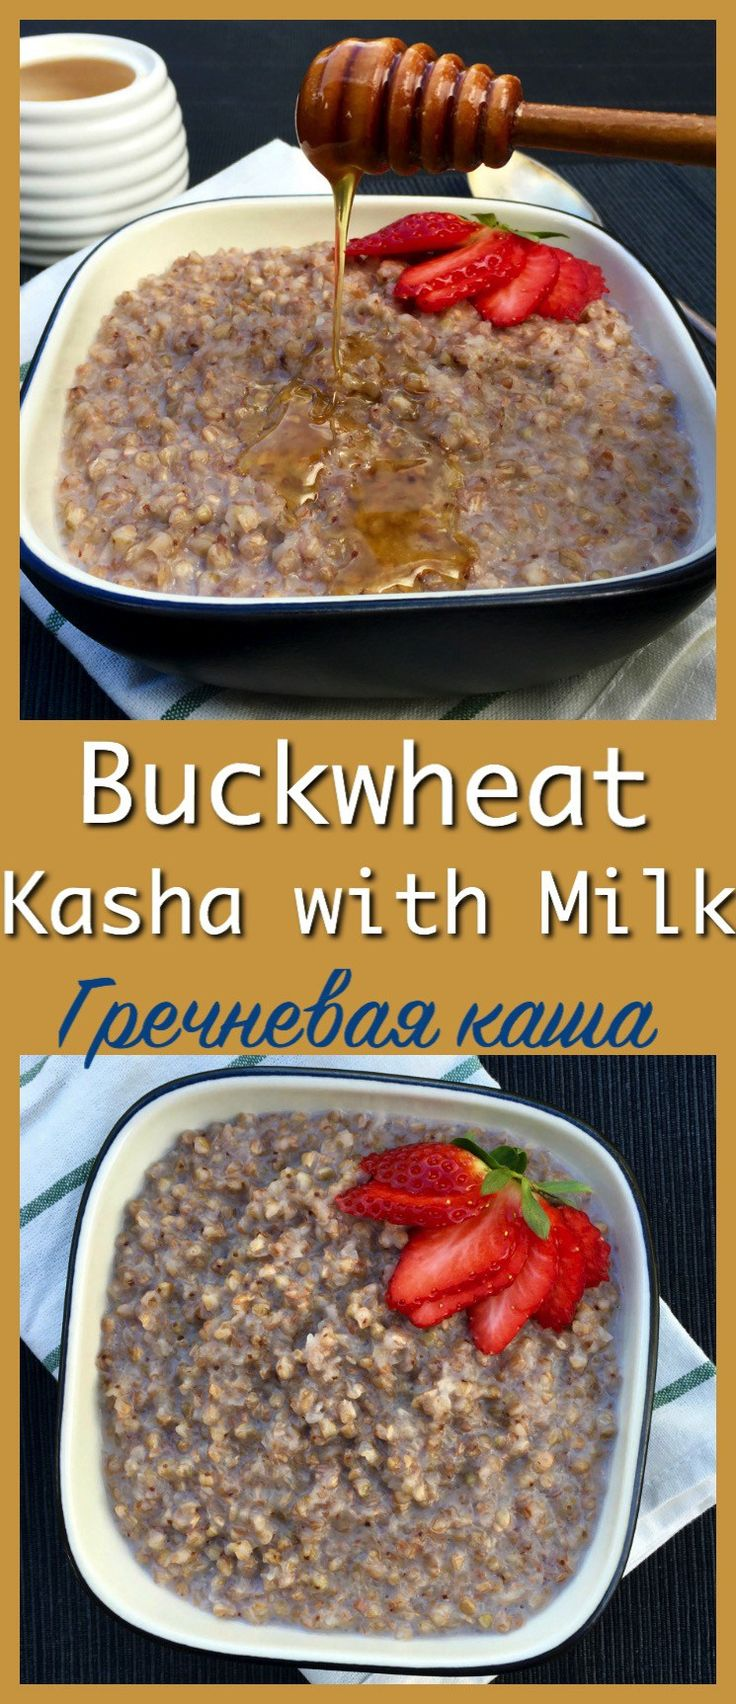 A Russian and Eastern European Breakfast Cereal Classic. Incredibly Healthy, Low GI, and Gluten Free Superfood! Buckwheat Kasha with Milk (Гречневая каша)